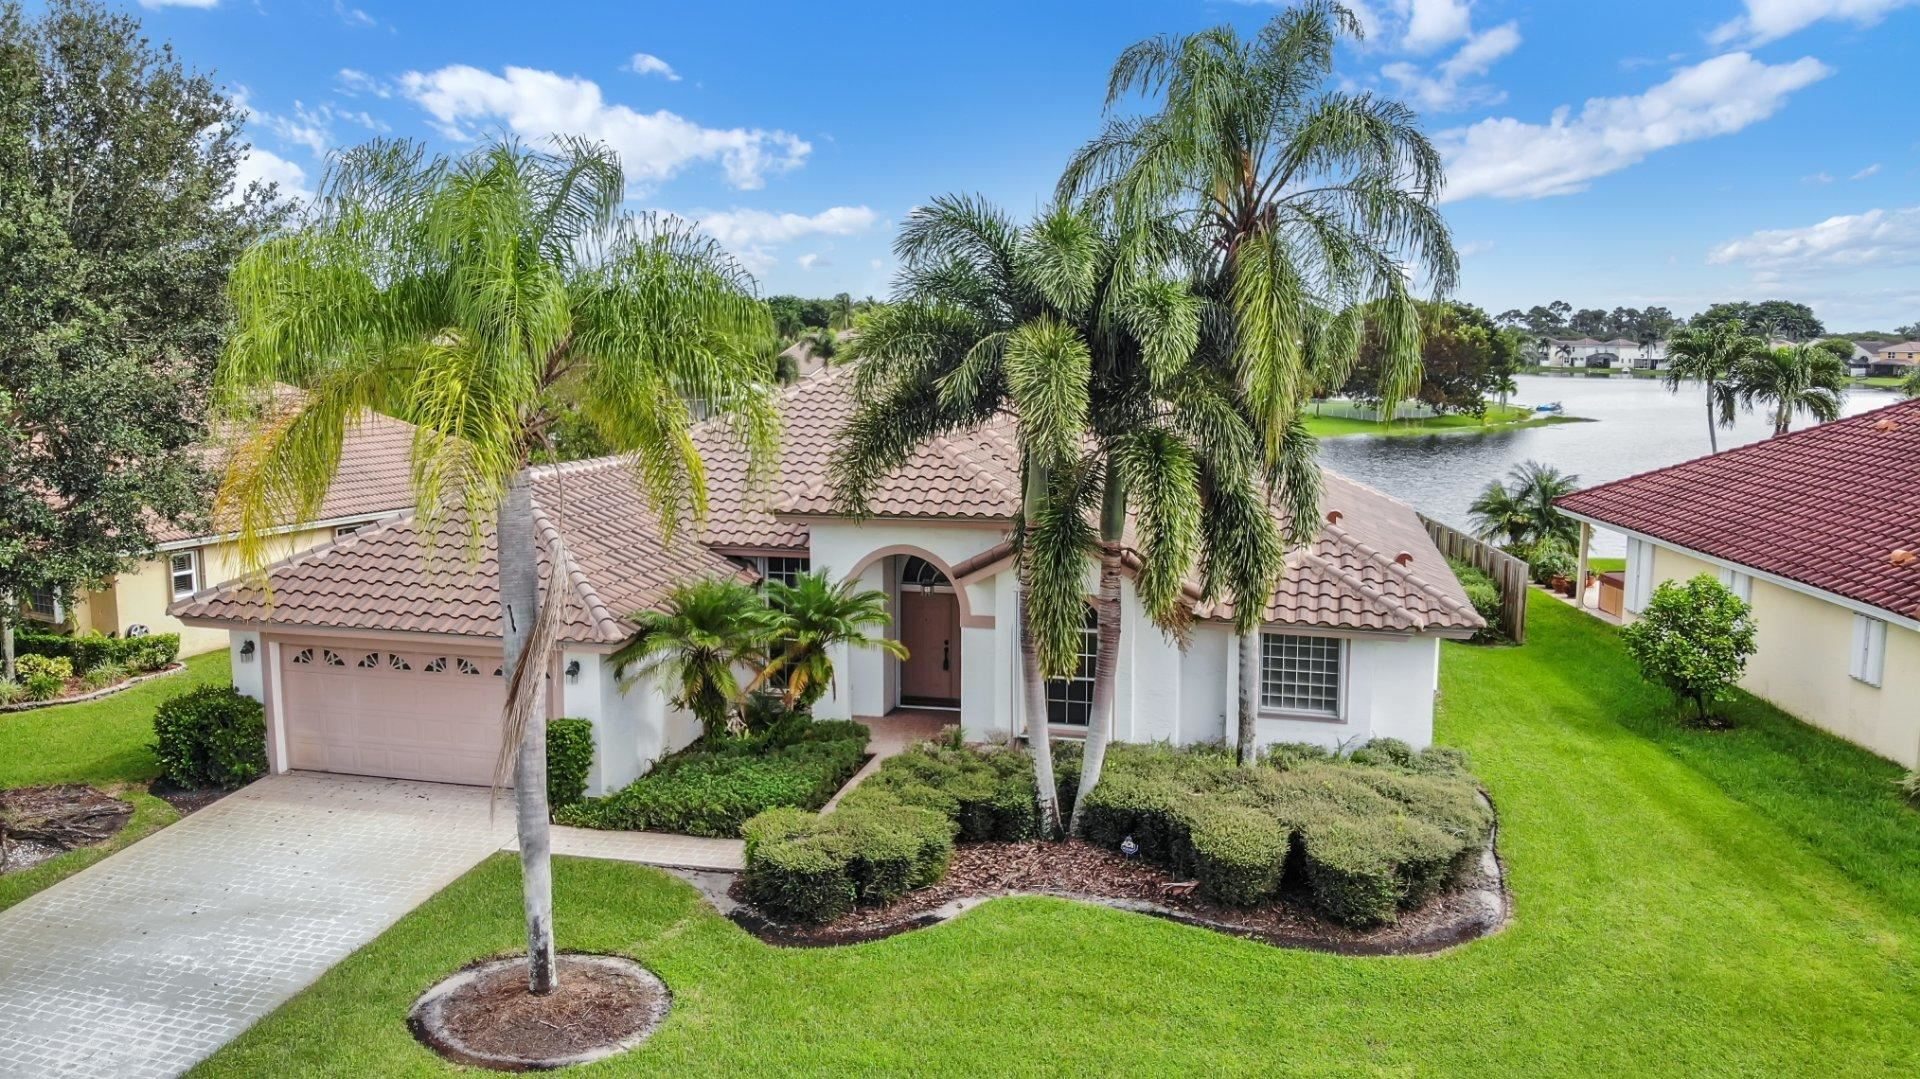 Photo of 7847 Forestay Drive, Lake Worth, FL 33467 (MLS # RX-10666955)